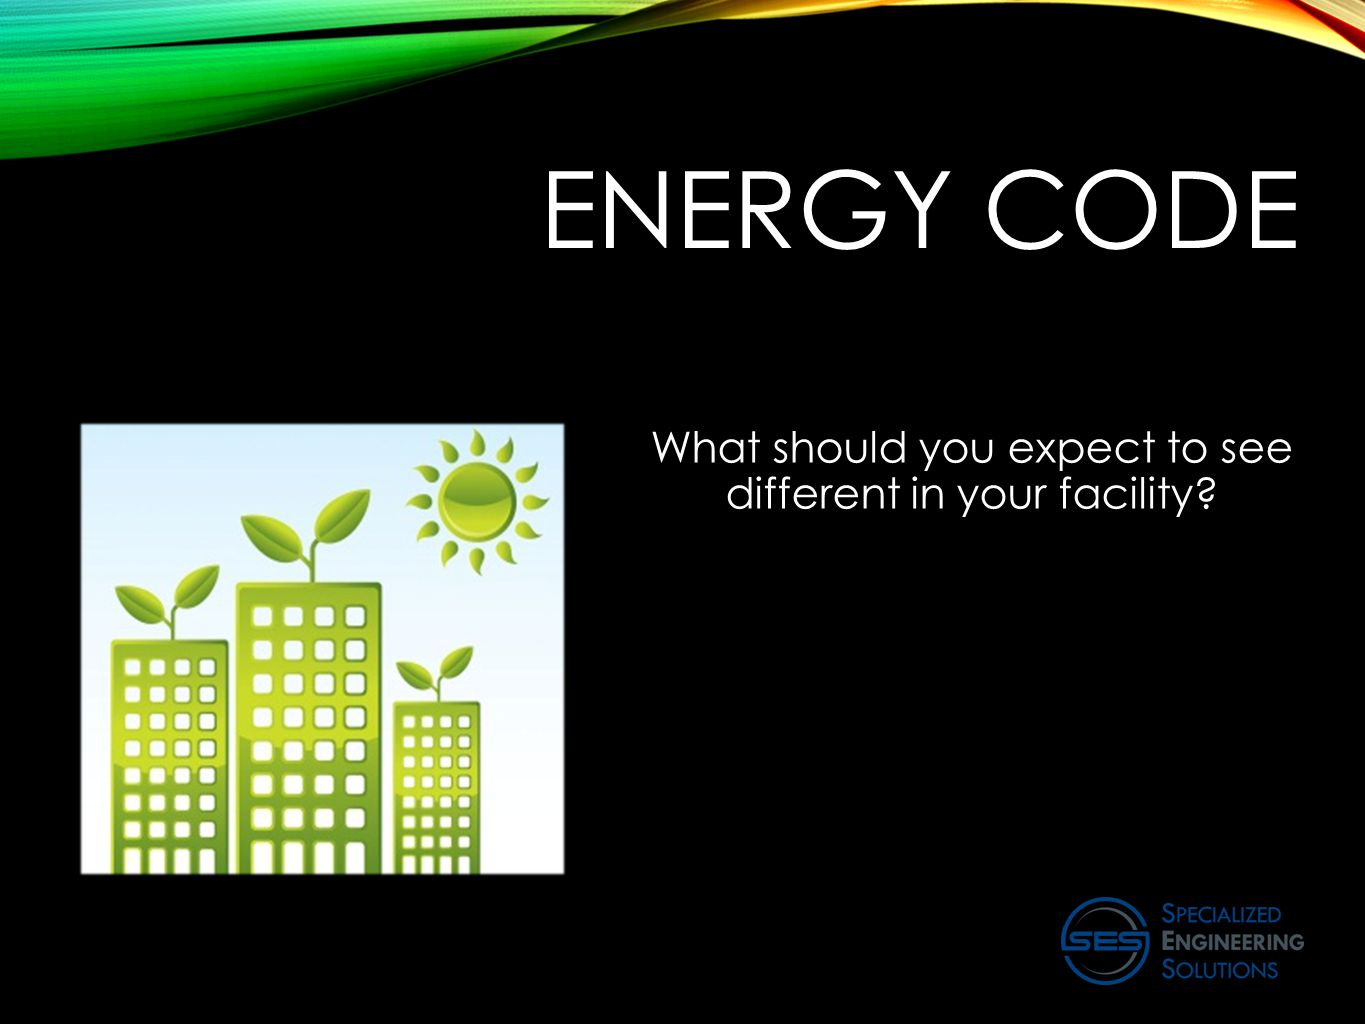 ENERGY CODE What should you expect to see different in your facility?